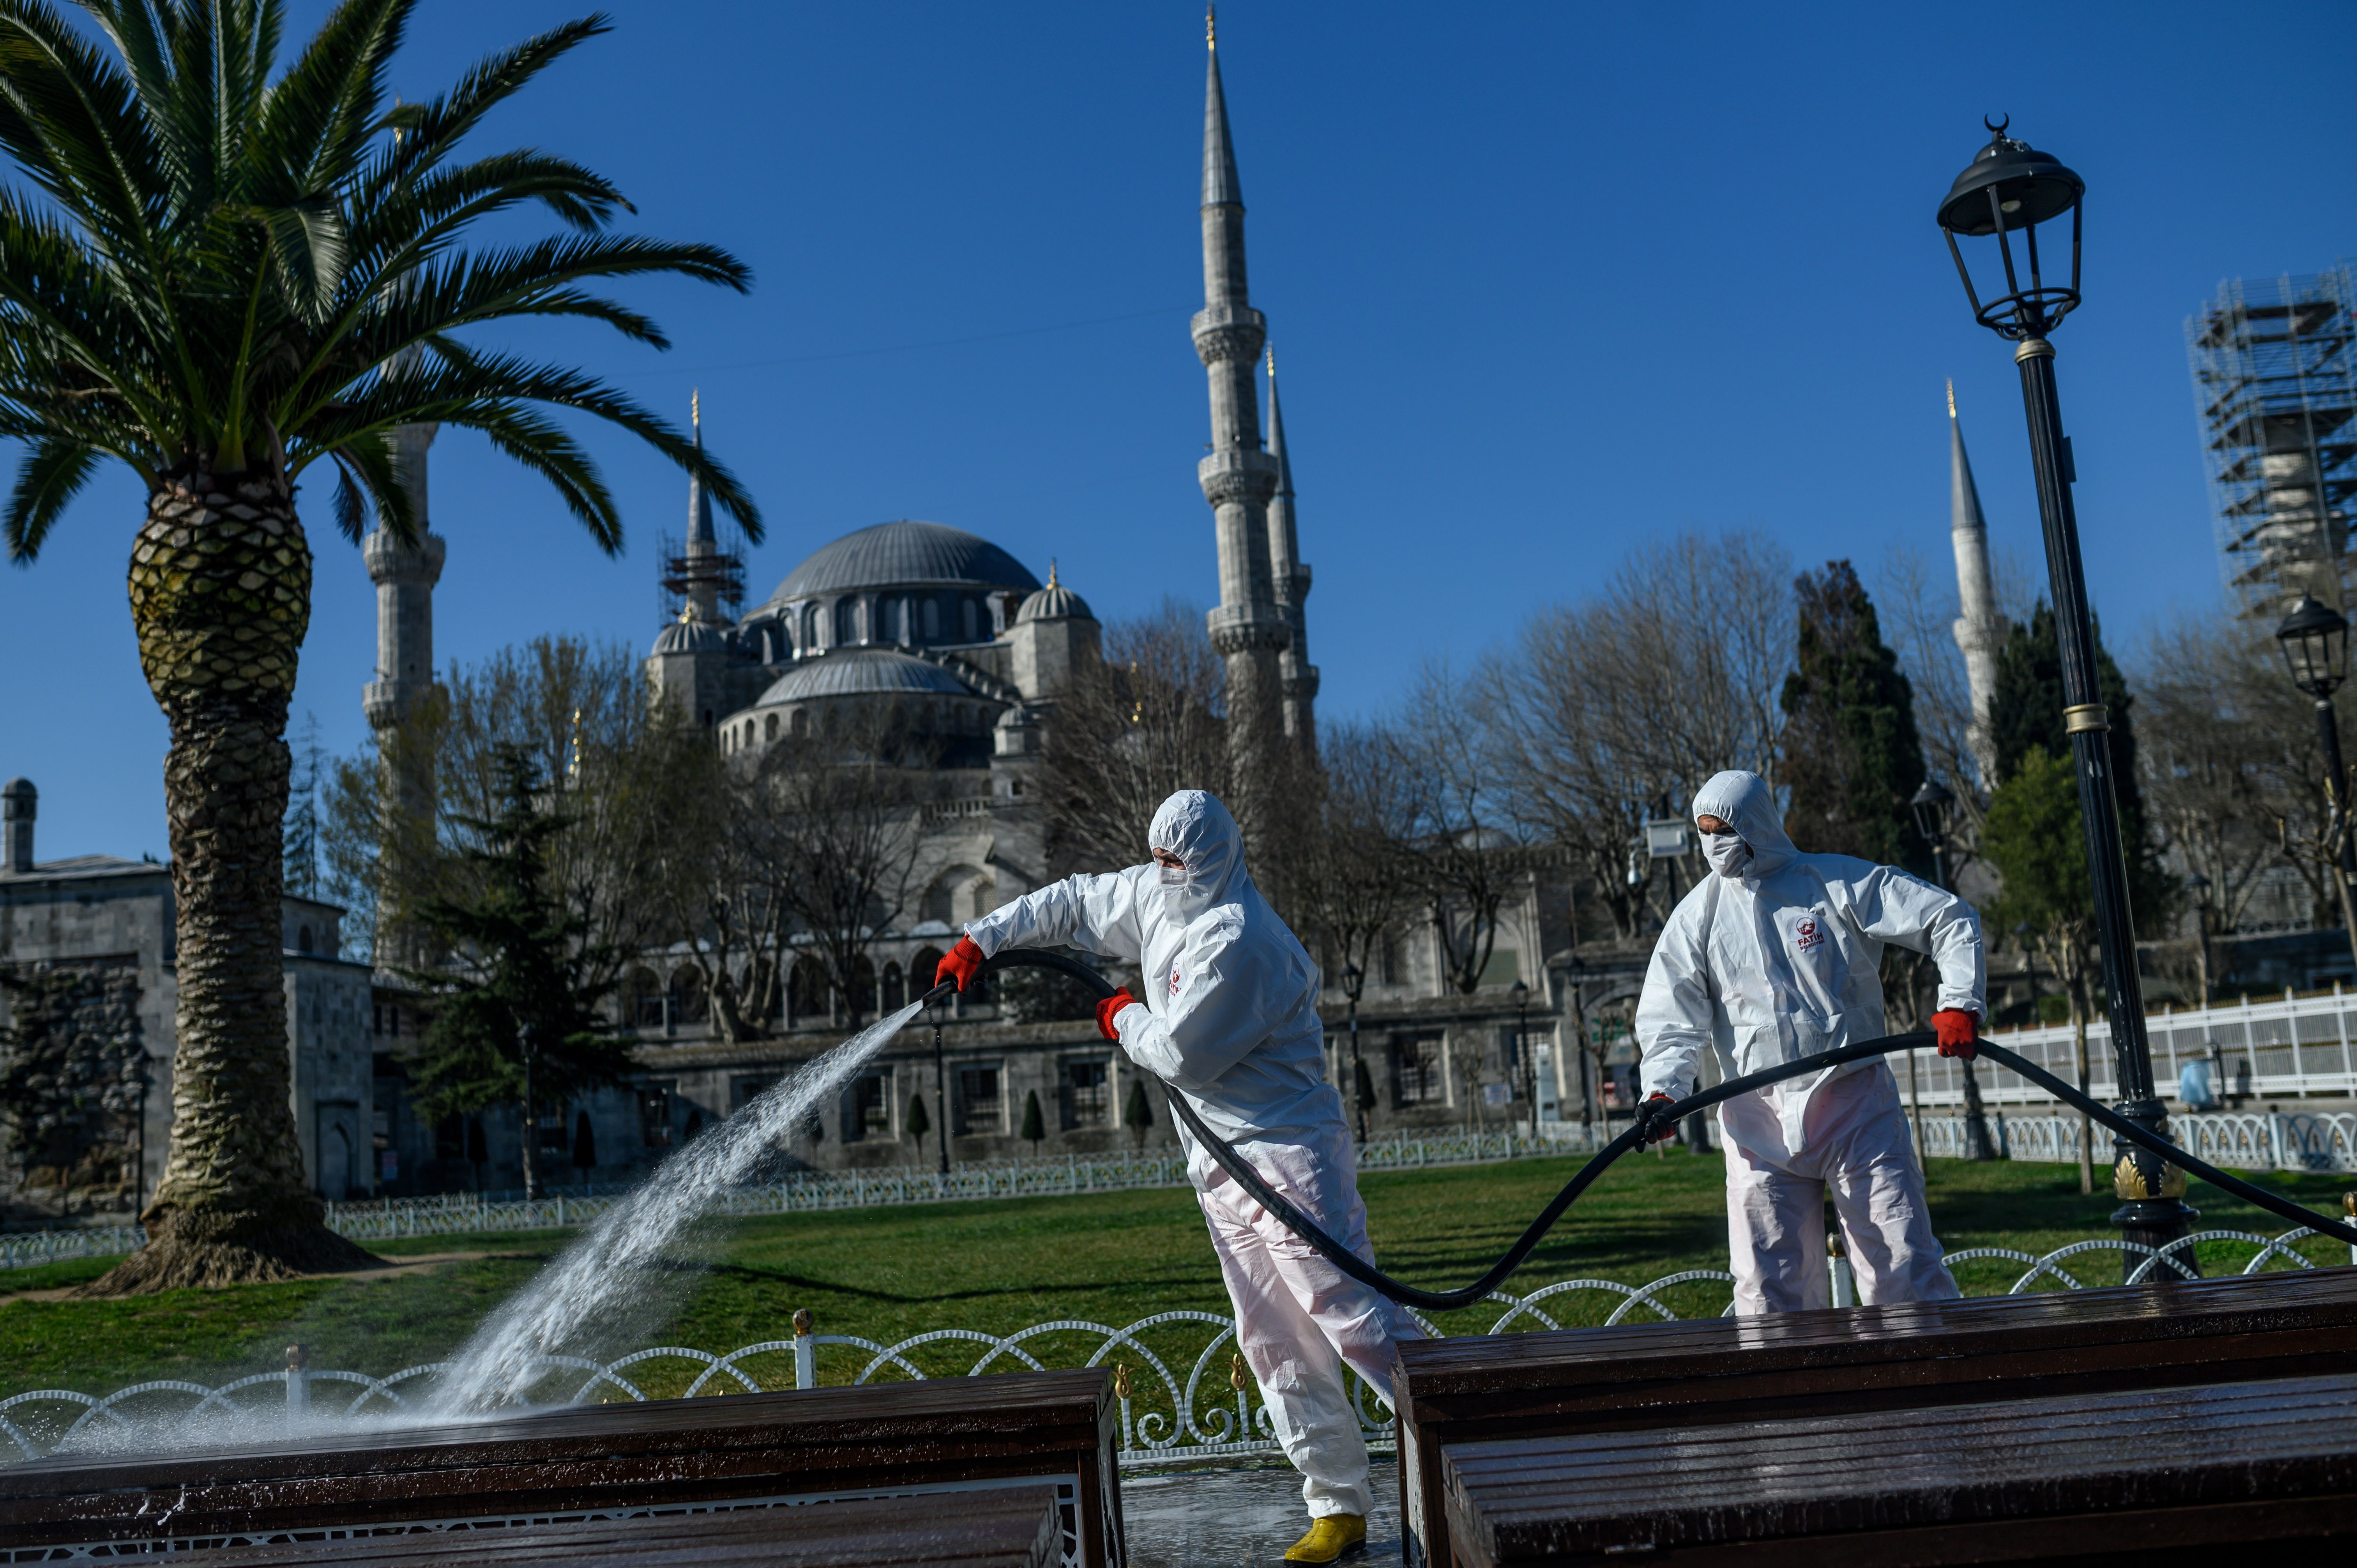 Members of the Fatih Municipality disinfect and wash down the Sultanahmet Square in front of the Blue Mosque in Istanbul to prevent the spread of the novel coronavirus. (BULENT KILIC/AFP via Getty Images)